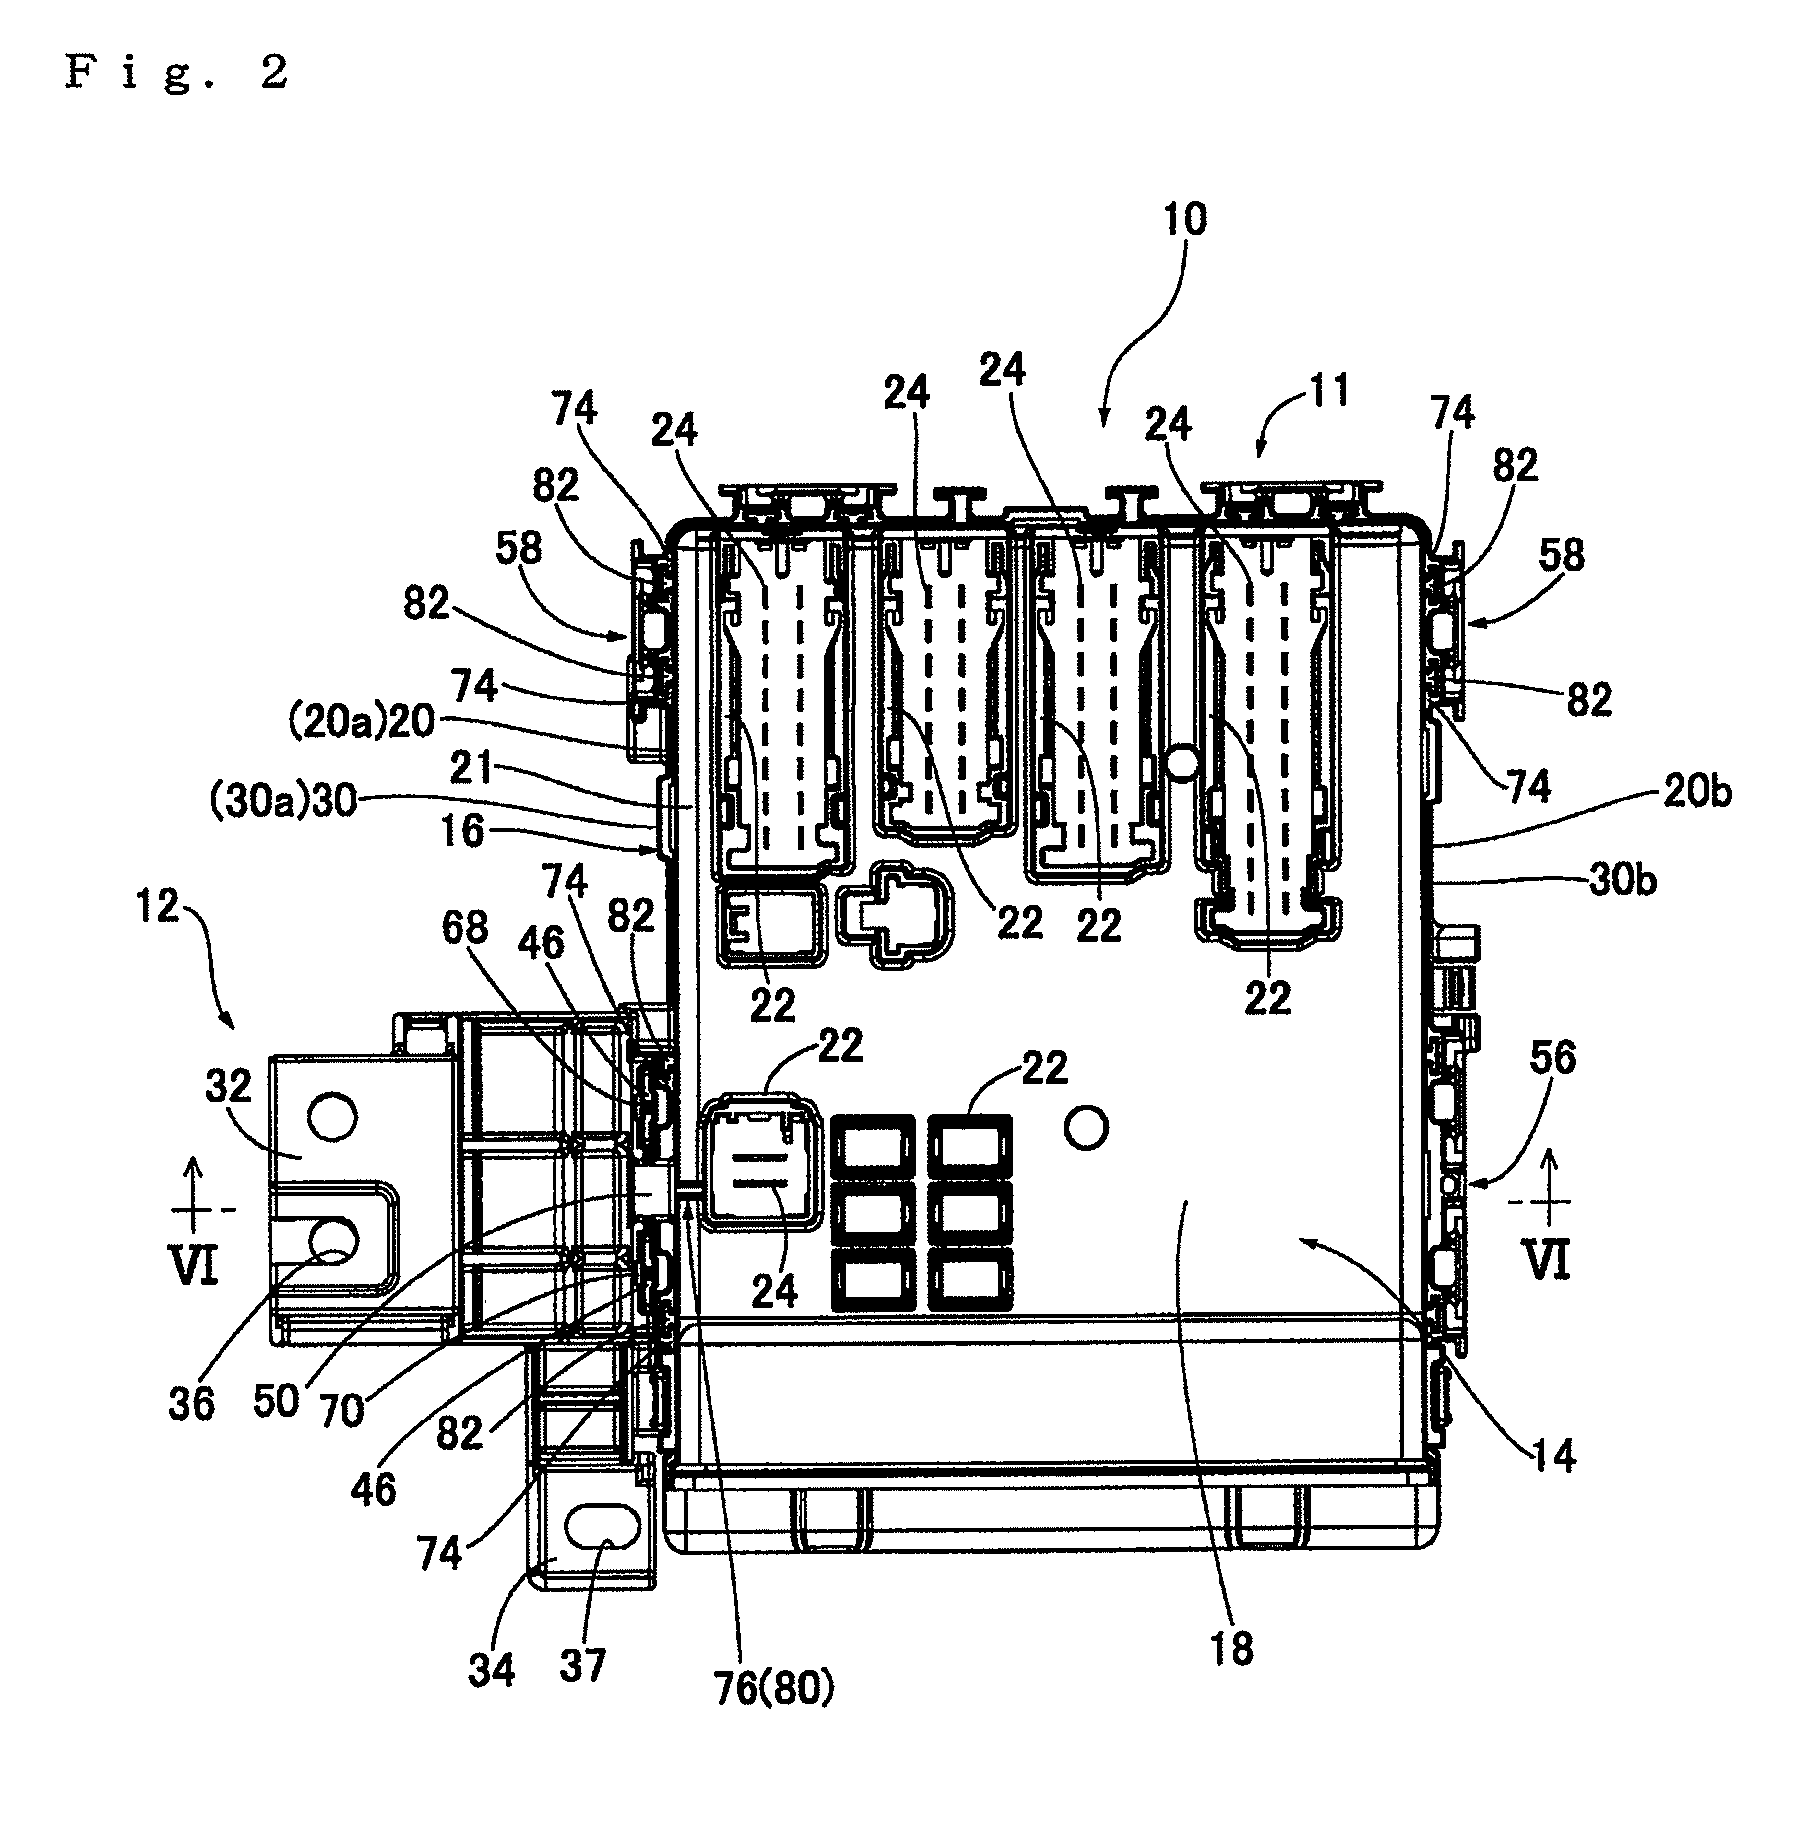 patent junction box  patent  free engine image for user